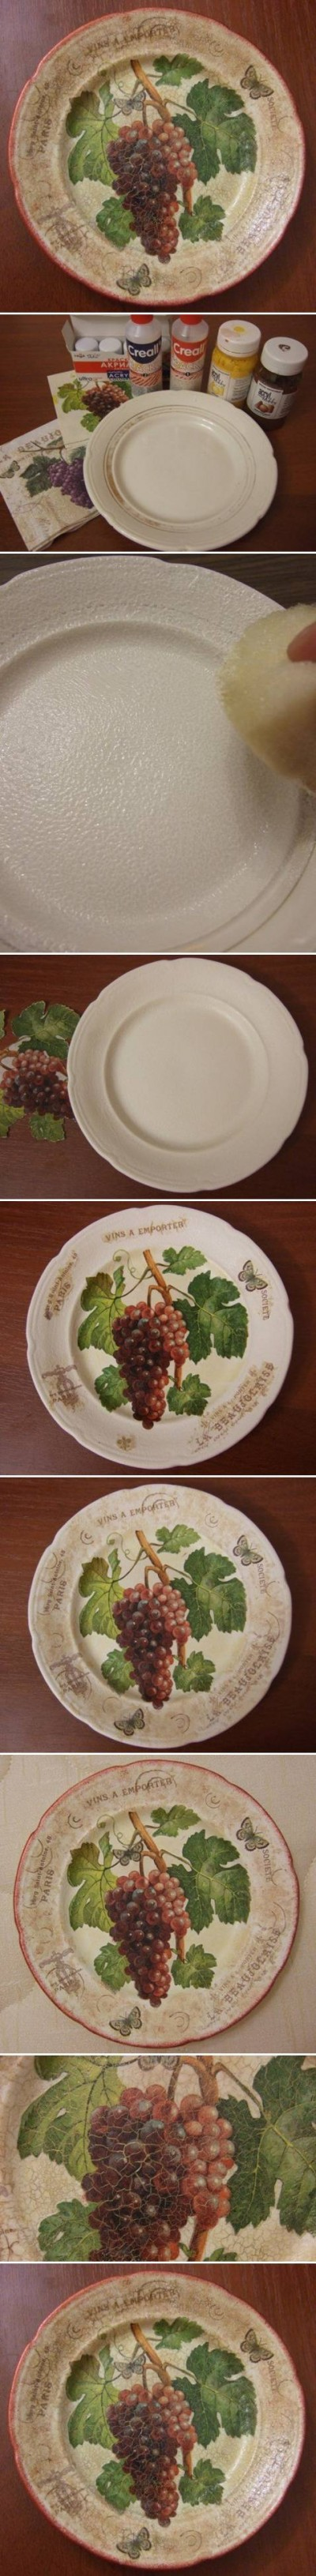 How to make Old Plate Decoupage step by step DIY tutorial instructions